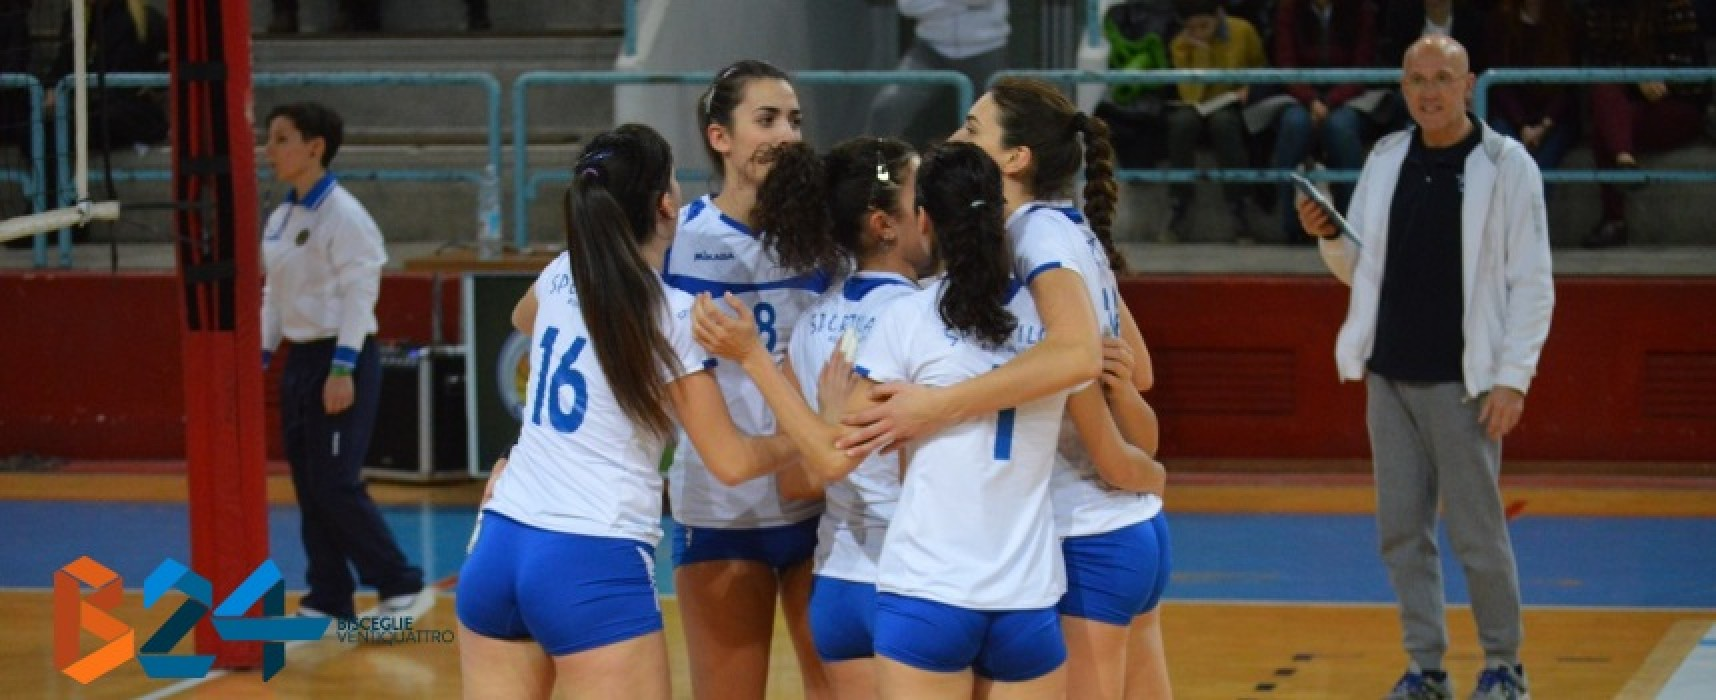 Sportilia Volley, secco 3-0 all'Aquila Azzurra Trani